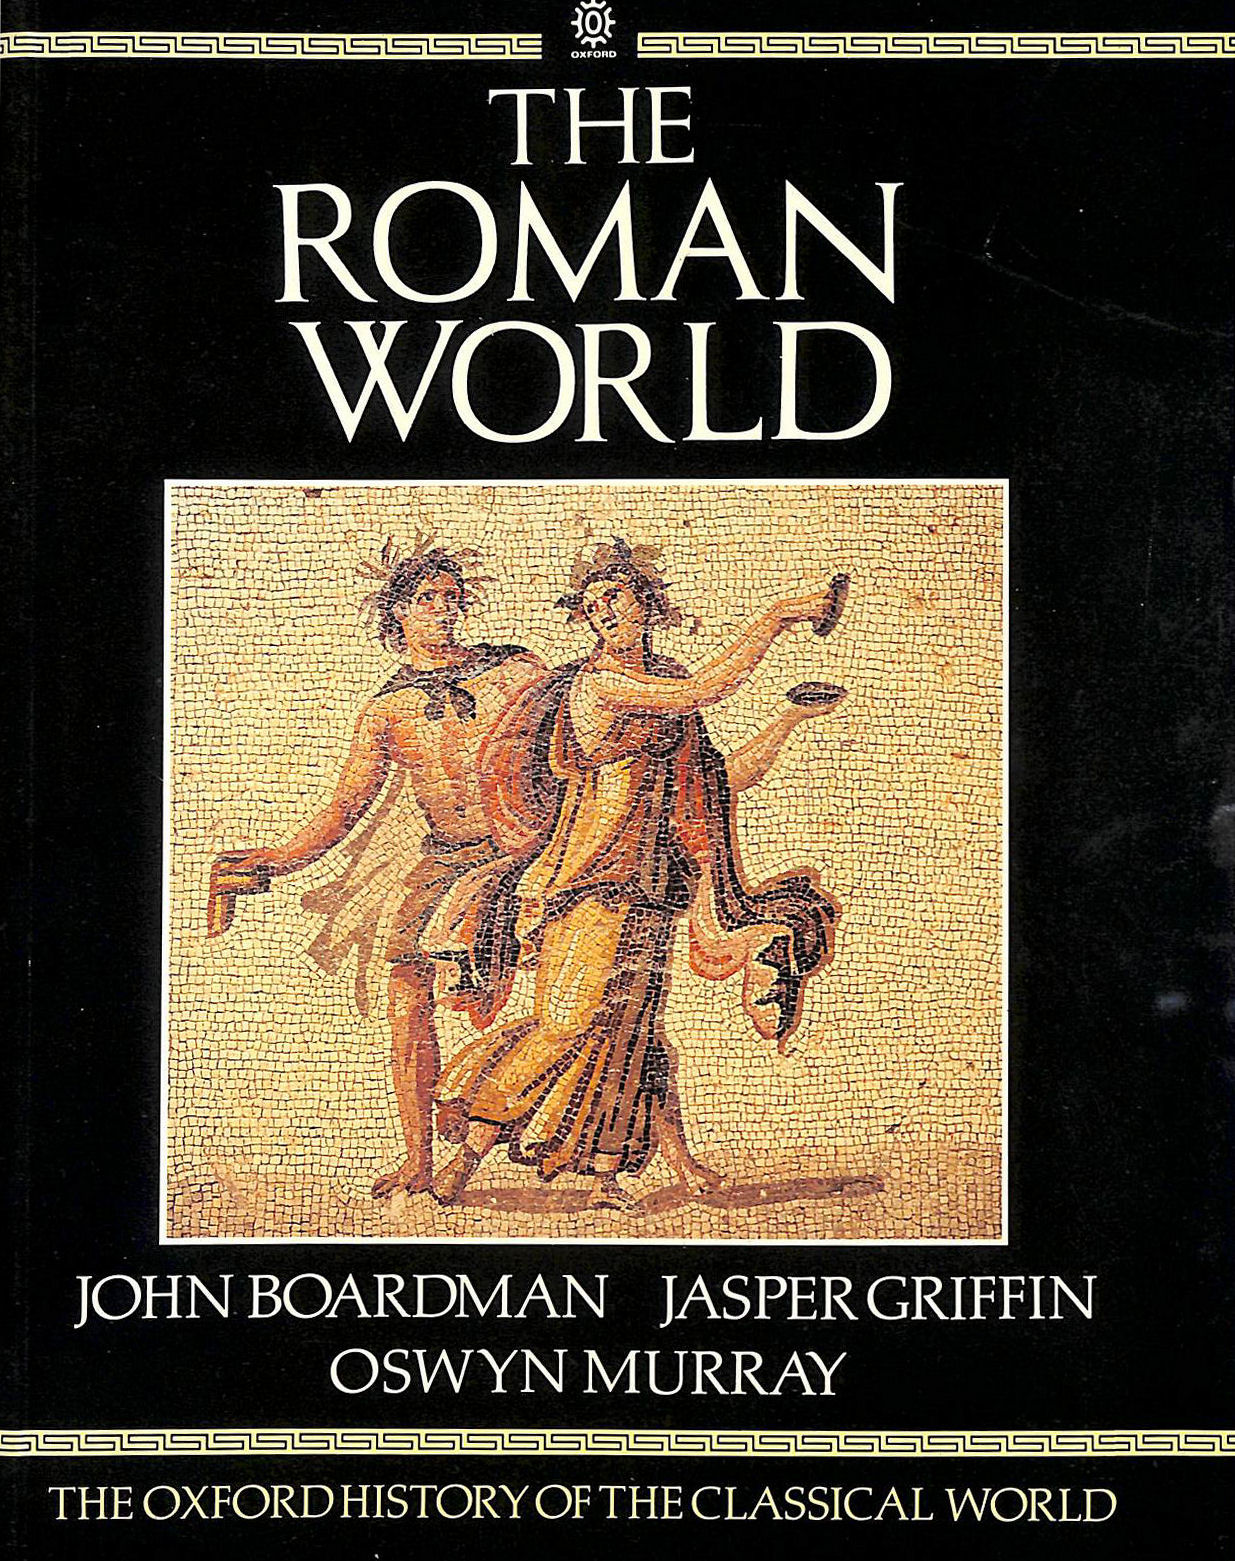 Image for The Oxford History Of The Classical World. The Roman World: The Roman World Vol 2